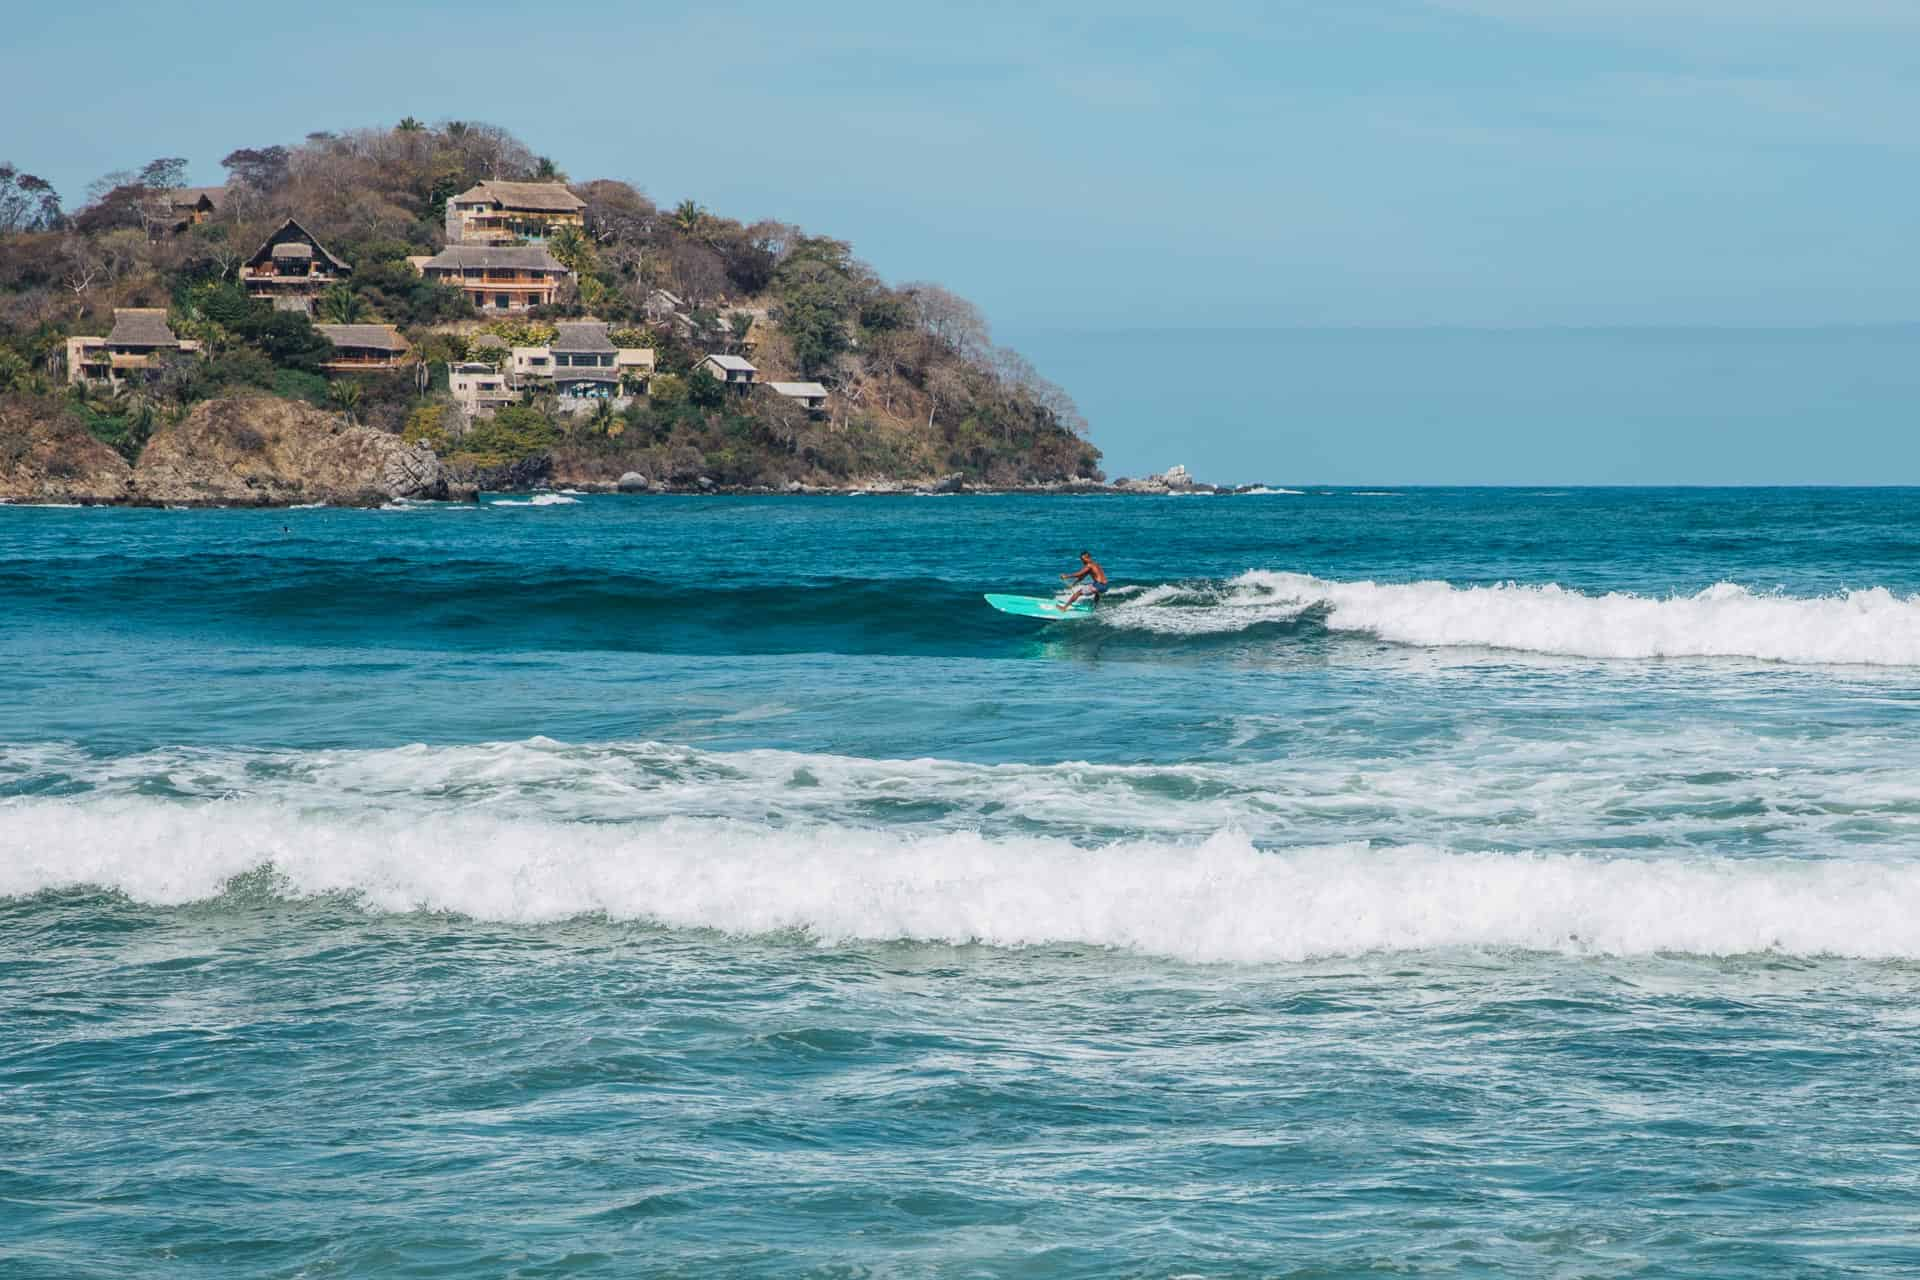 playa sayulita, sayulita playa, sayulita beach, playa sayulita nayarit, things to do in sayulita, sayulita mexico, what to do in sayulita, sayulita